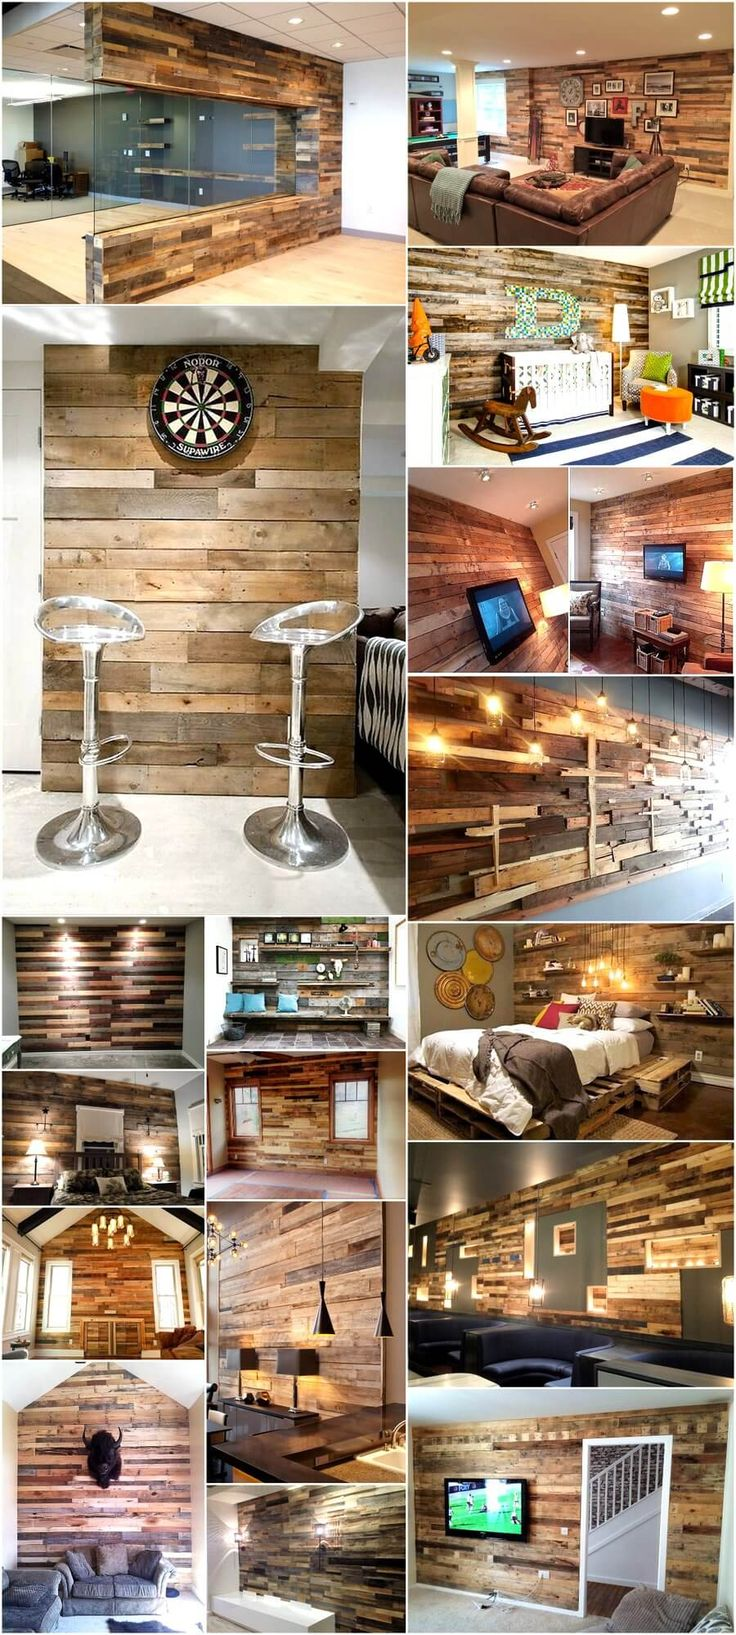 Until now we have gone through various DIY projects using pallet wood like sofas, coffee tables, center tables, bedroom furniture, media cabinets, wall shelves, patio furniture and many more. However, today we will be presenting to you something different that you can do with pallet wood in your home. Wood is always symbol of warmth and comfort. Infuse pallet wood wall cladding in your home's interior to make it attractive, interesting and welcoming. Select a dull and boring wall of your…